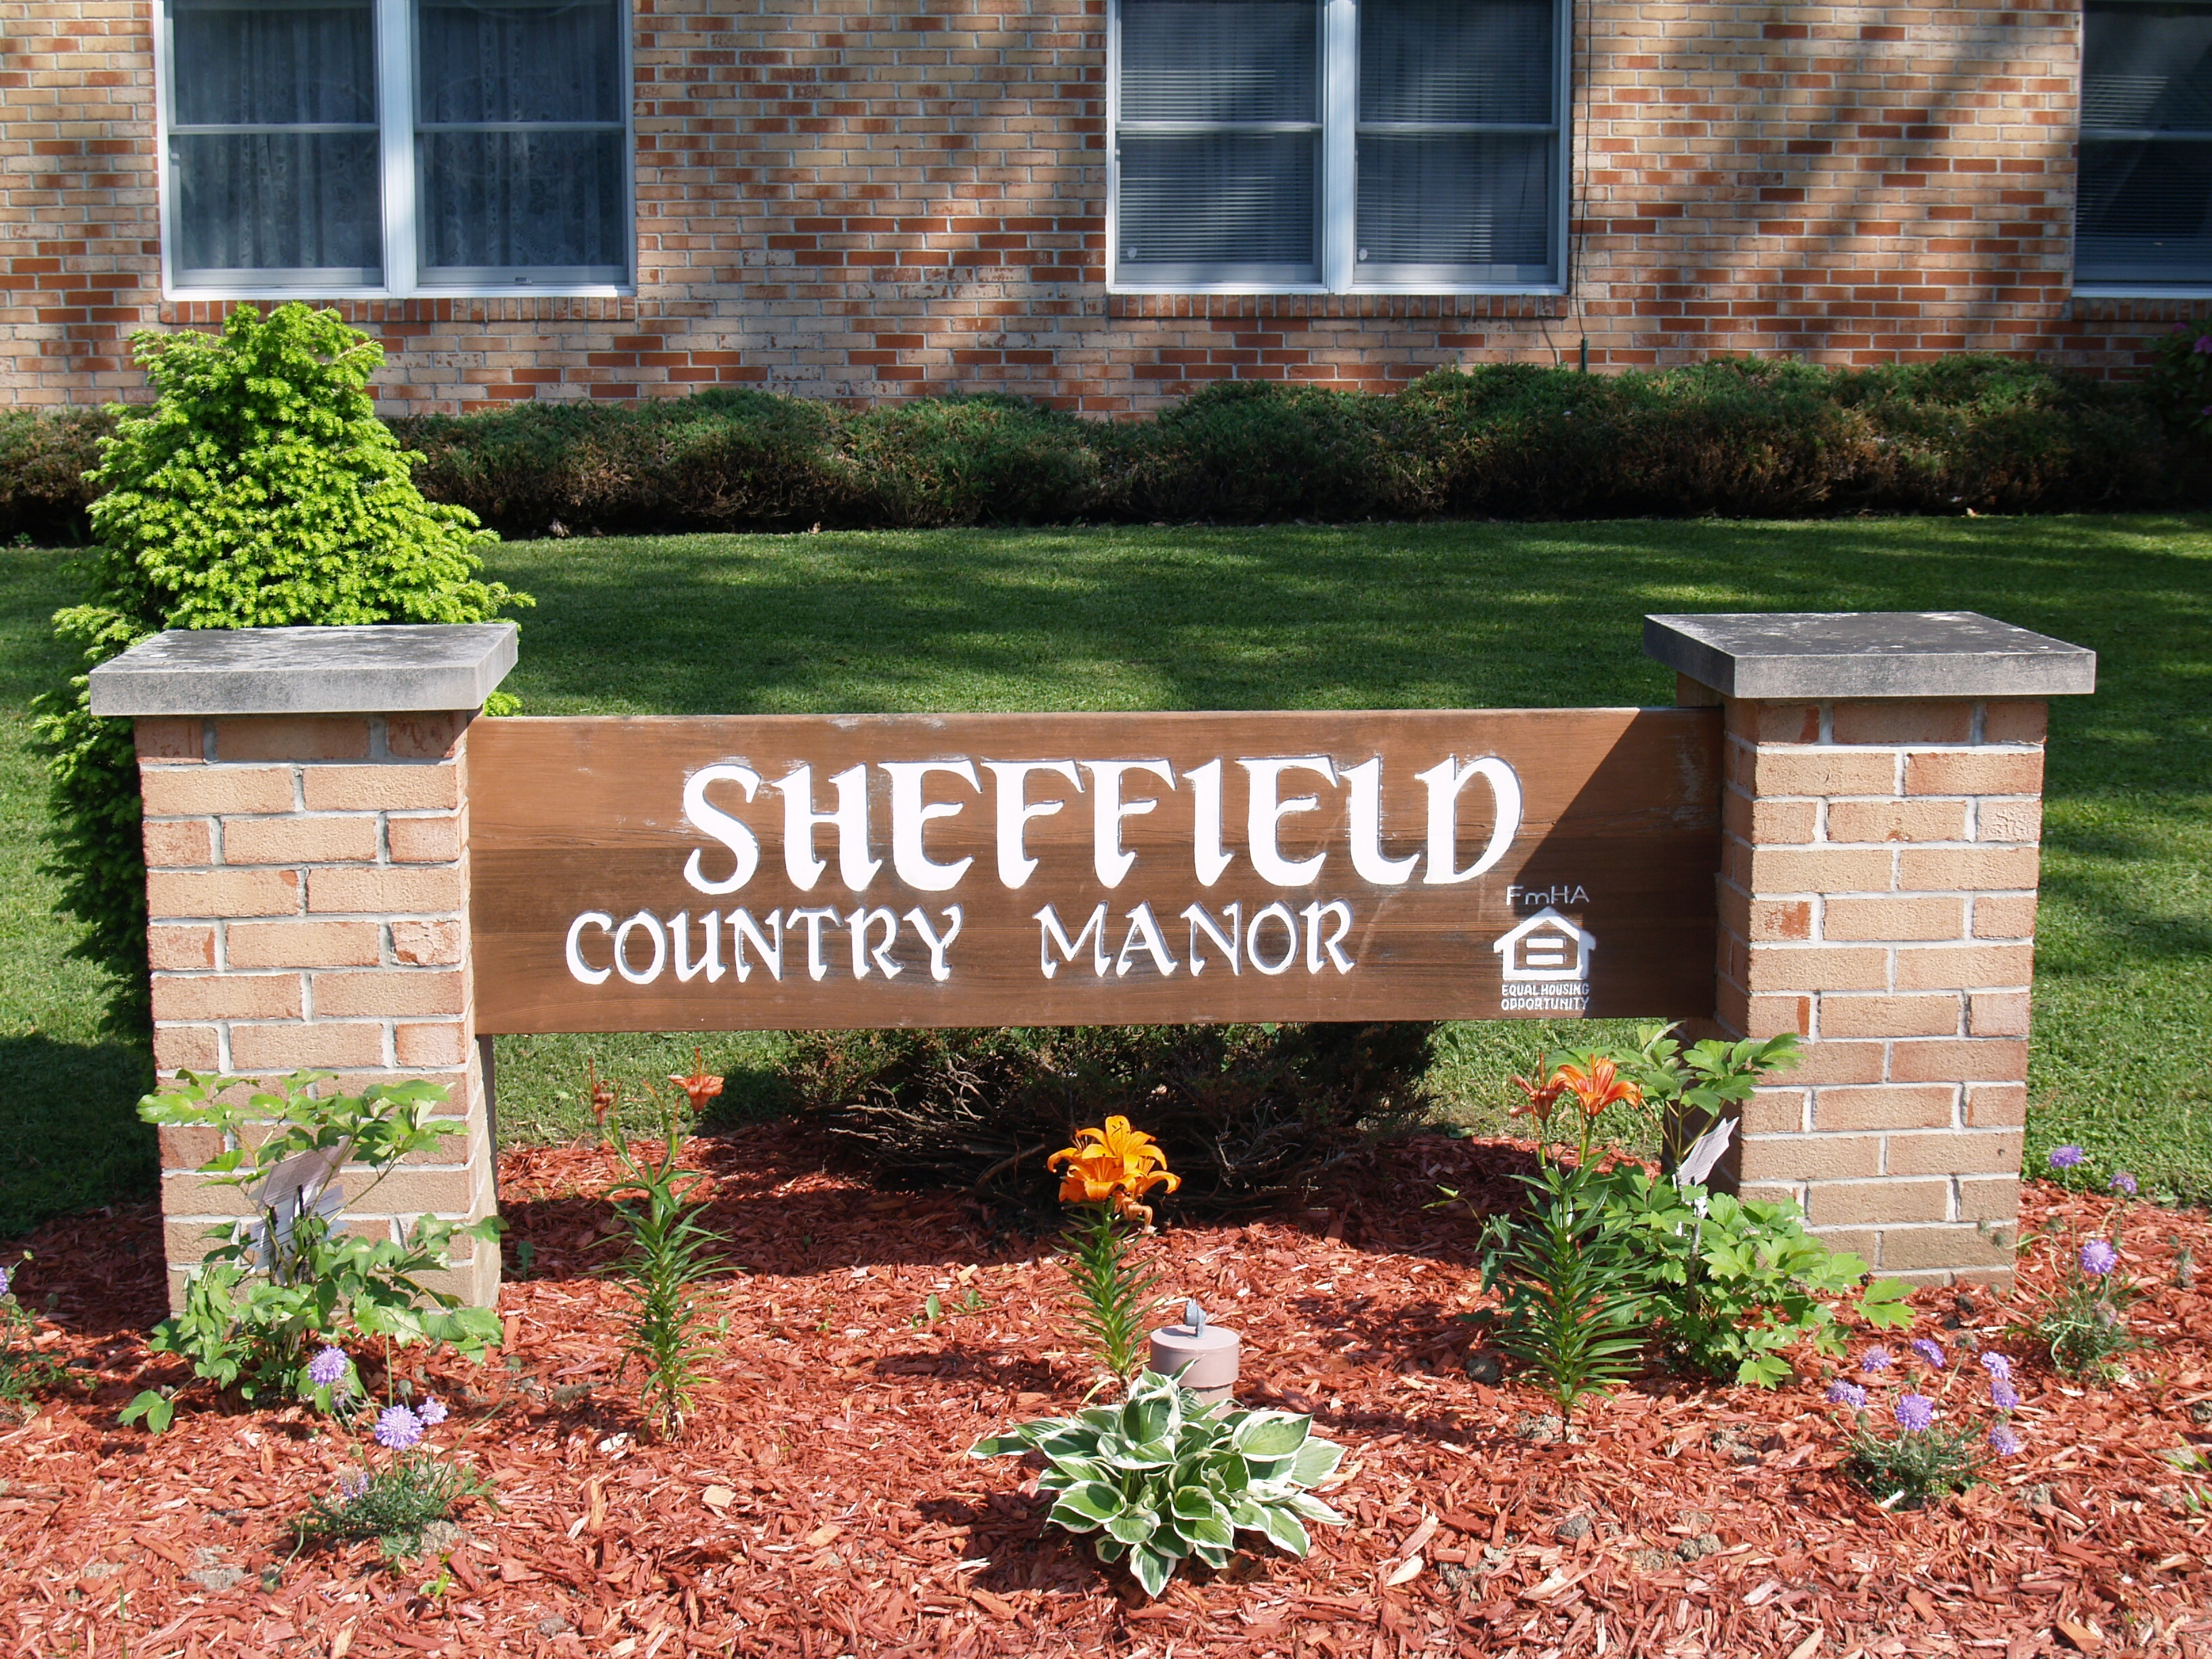 Image of Sheffield Country Manor in Sheffield, Pennsylvania